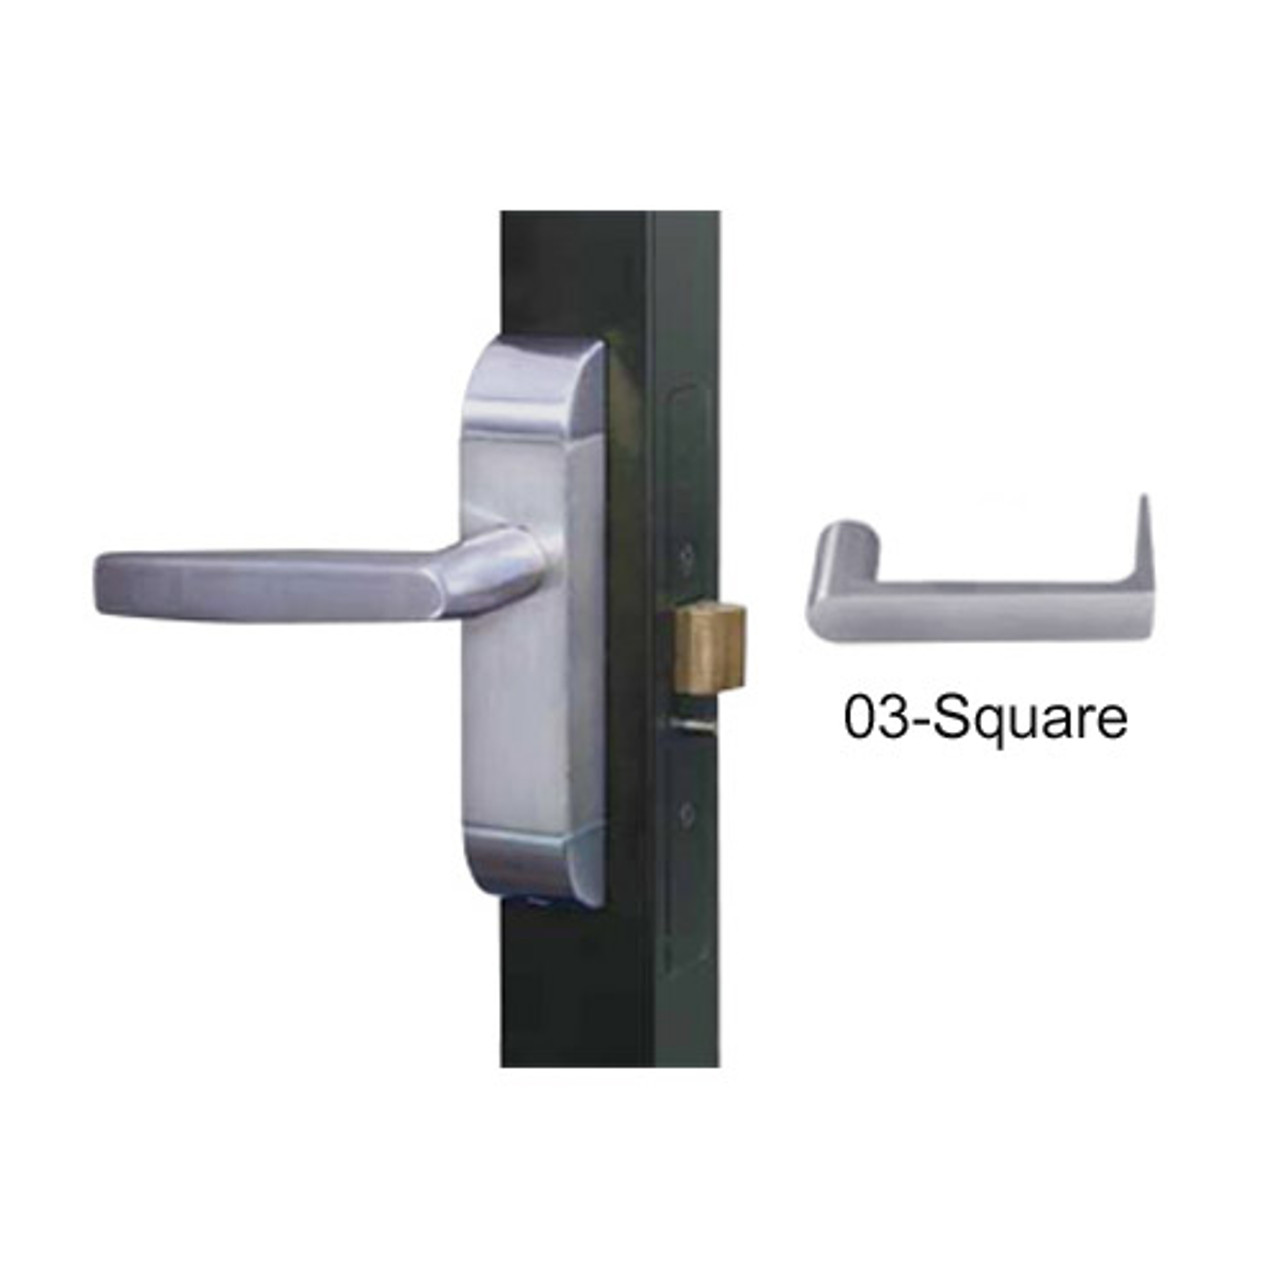 4600M-03-522-US32D Adams Rite Heavy Duty Square Deadlatch Handles in Satin Stainless Finish